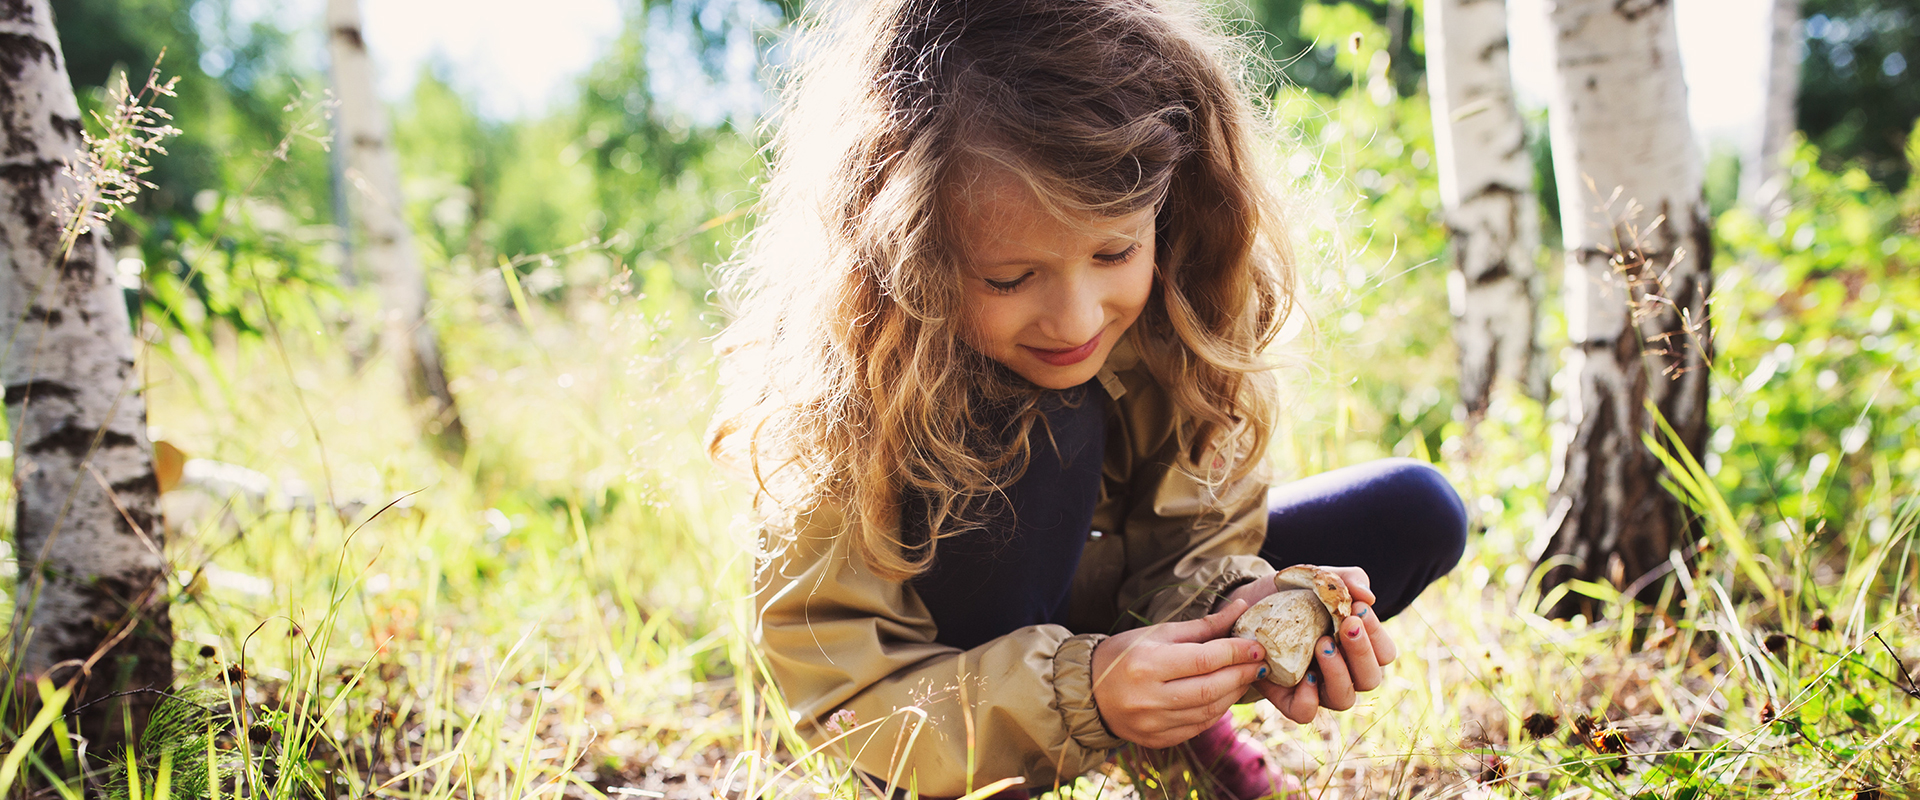 Girl picking wild mushrooms in a forest during summer.